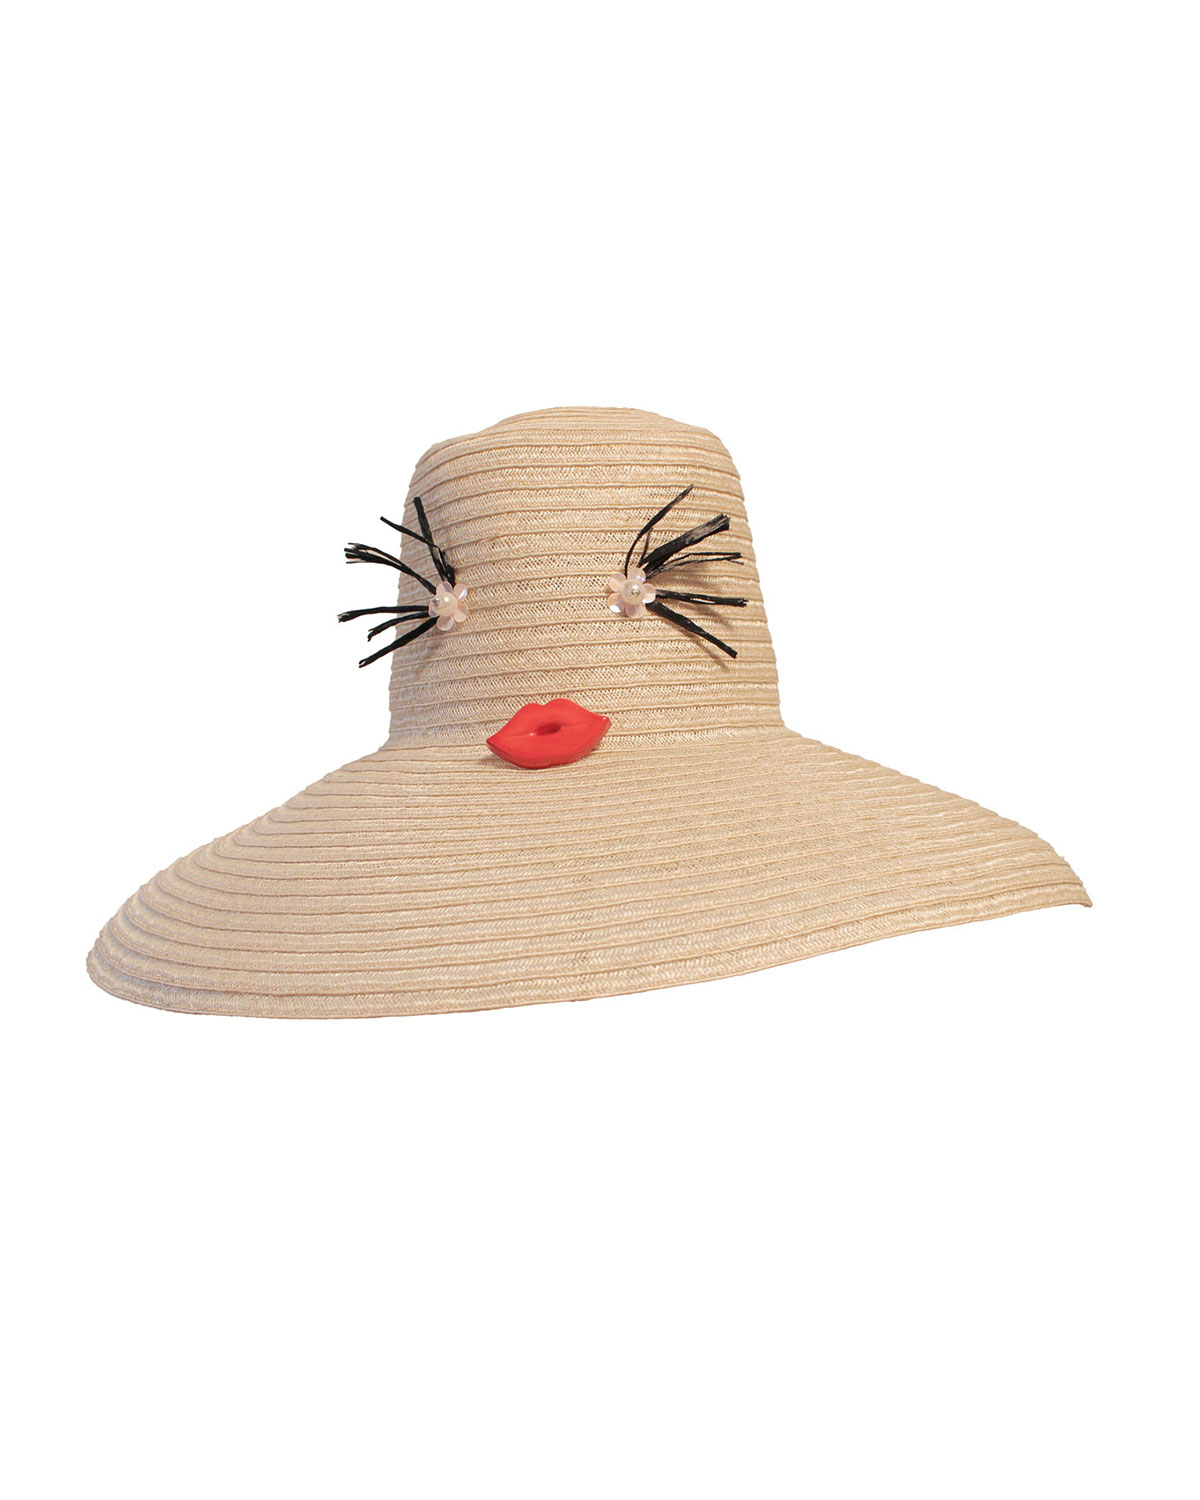 Yestadt Millinery Cheeky Straw Hat, Natural, Size: S/M(22.5)